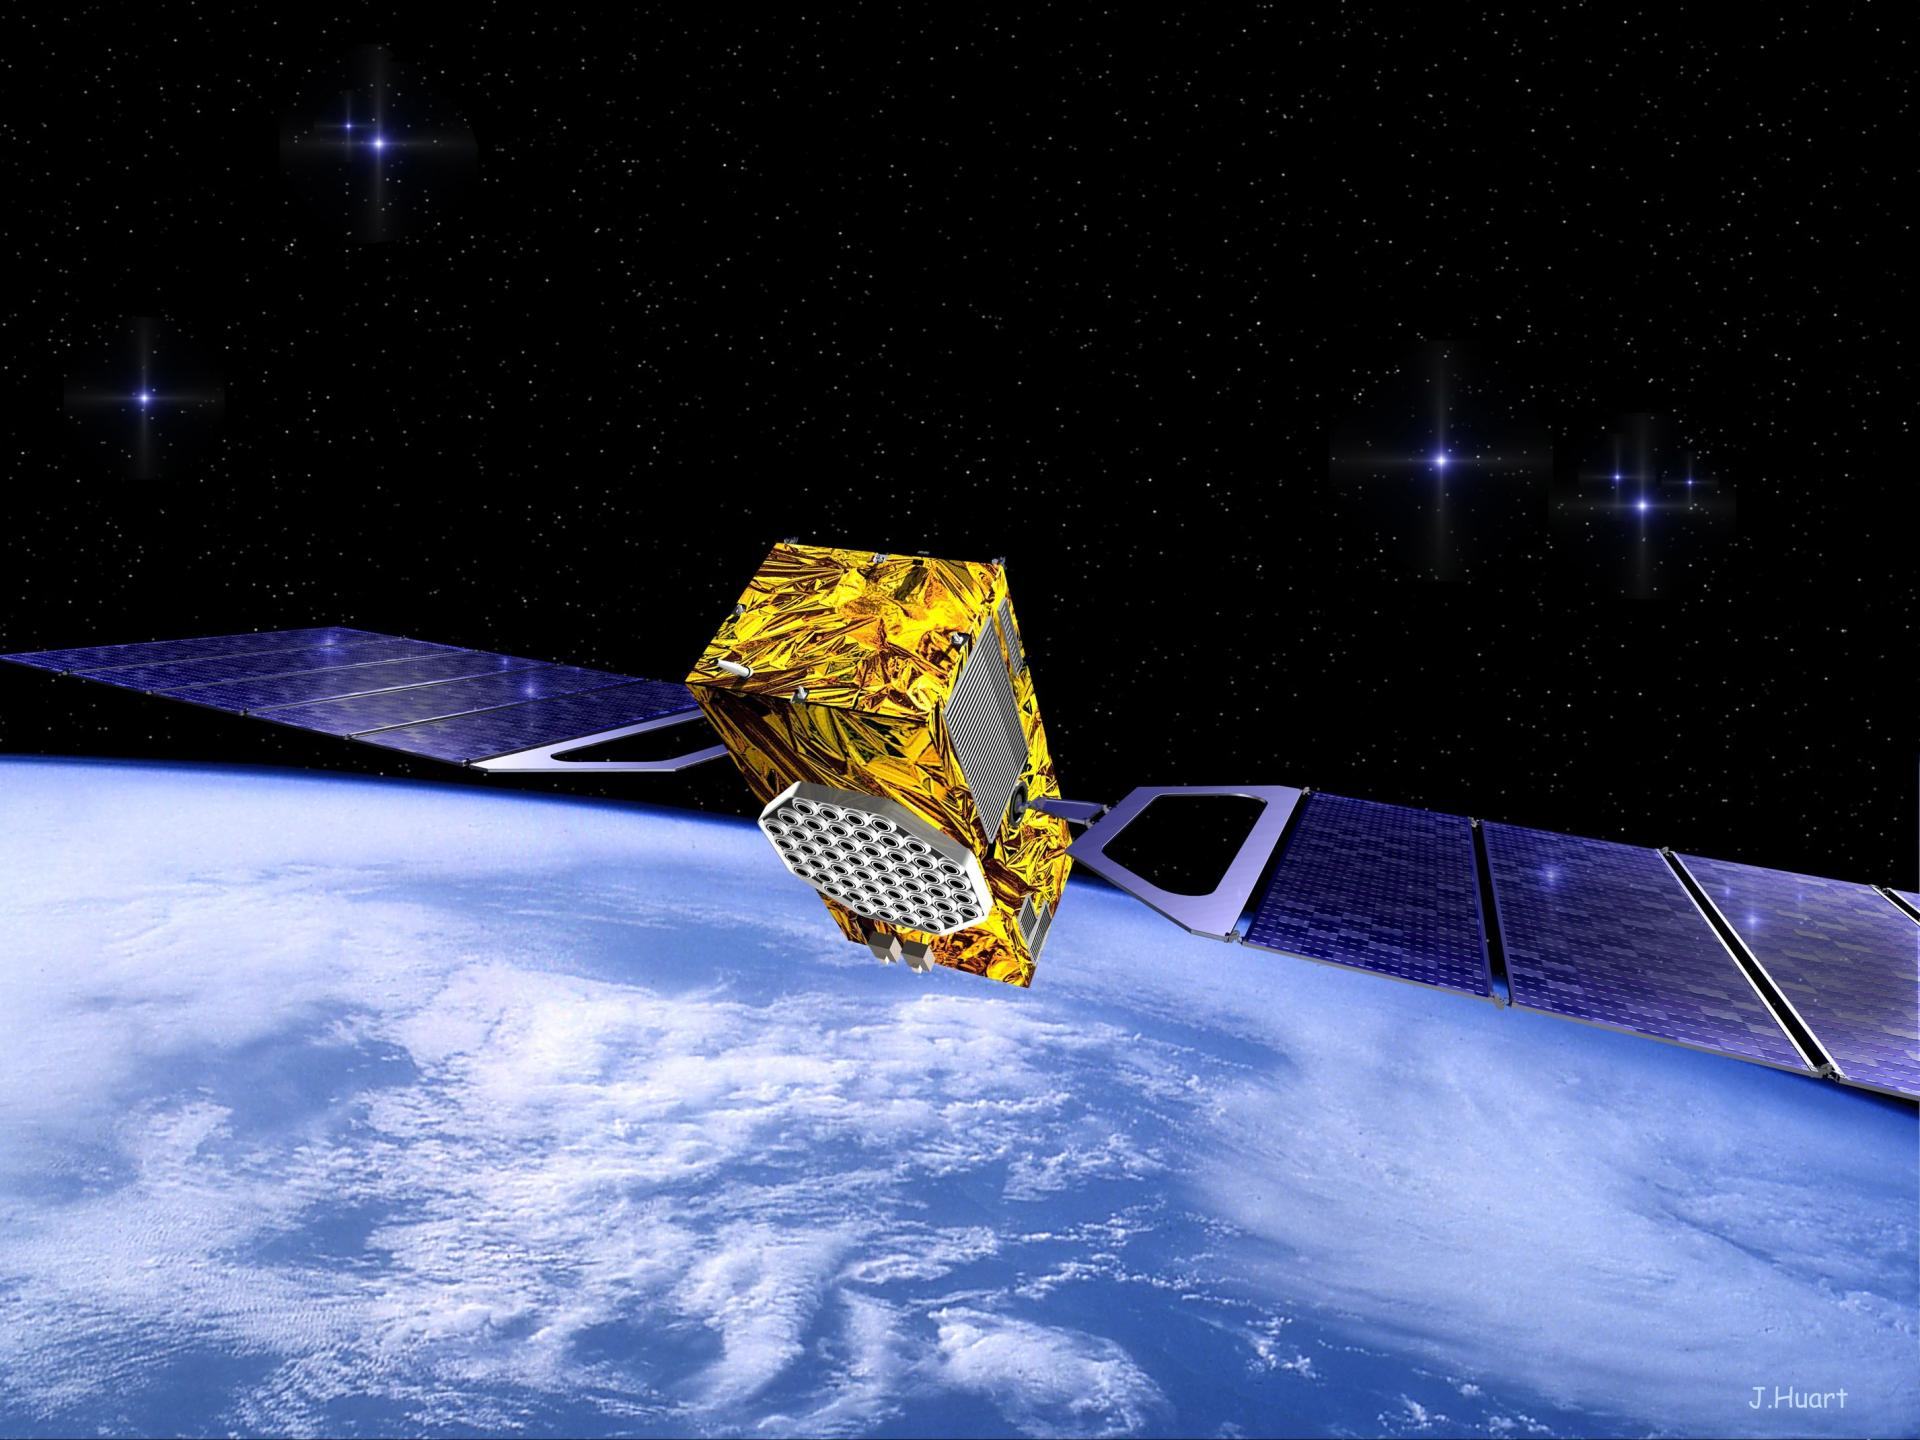 Iran to launch Zafar satellite soon